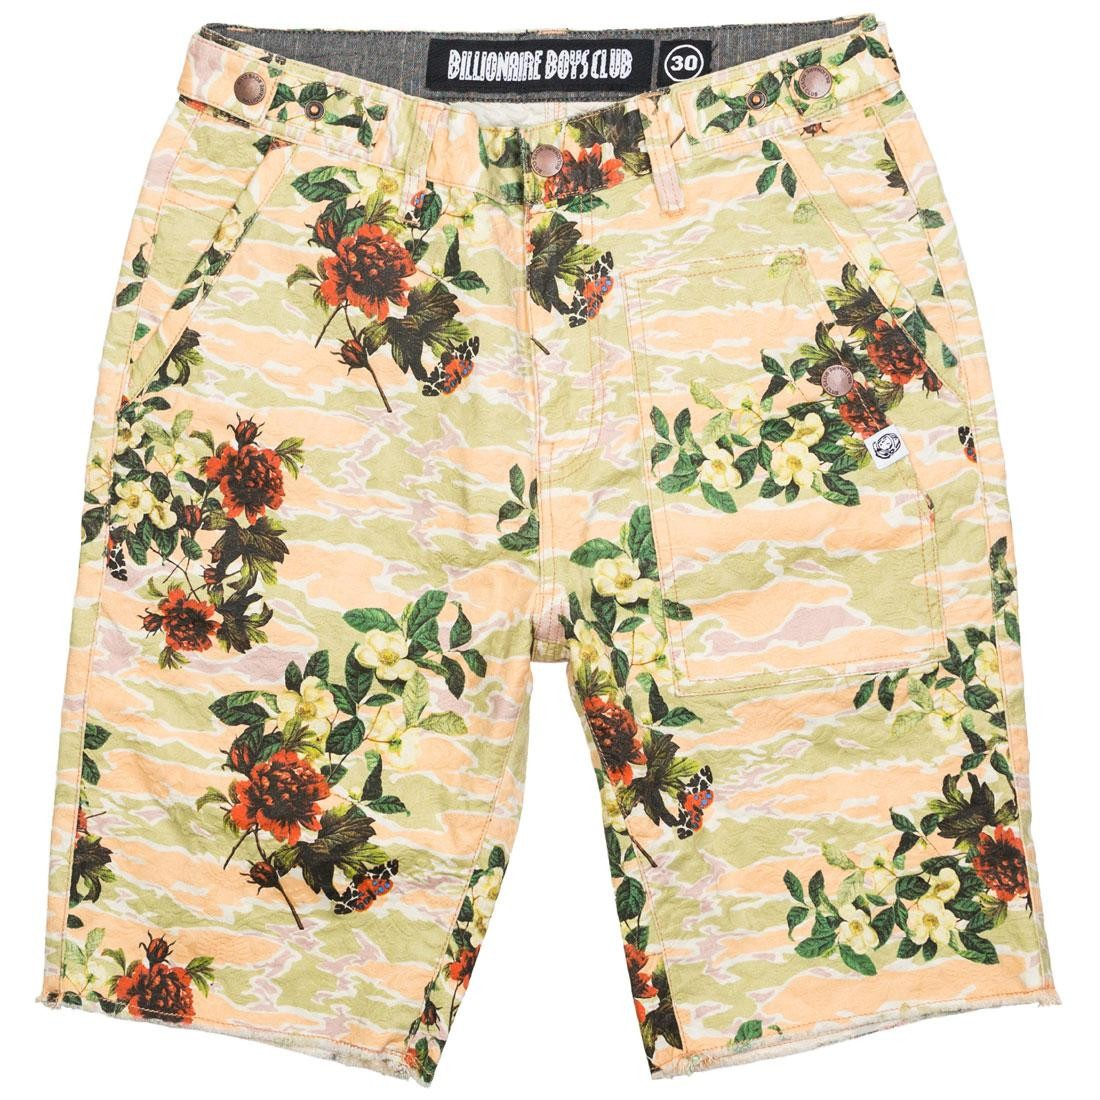 Billionaire Boys Club Men Greens Shorts (white / eggnog)